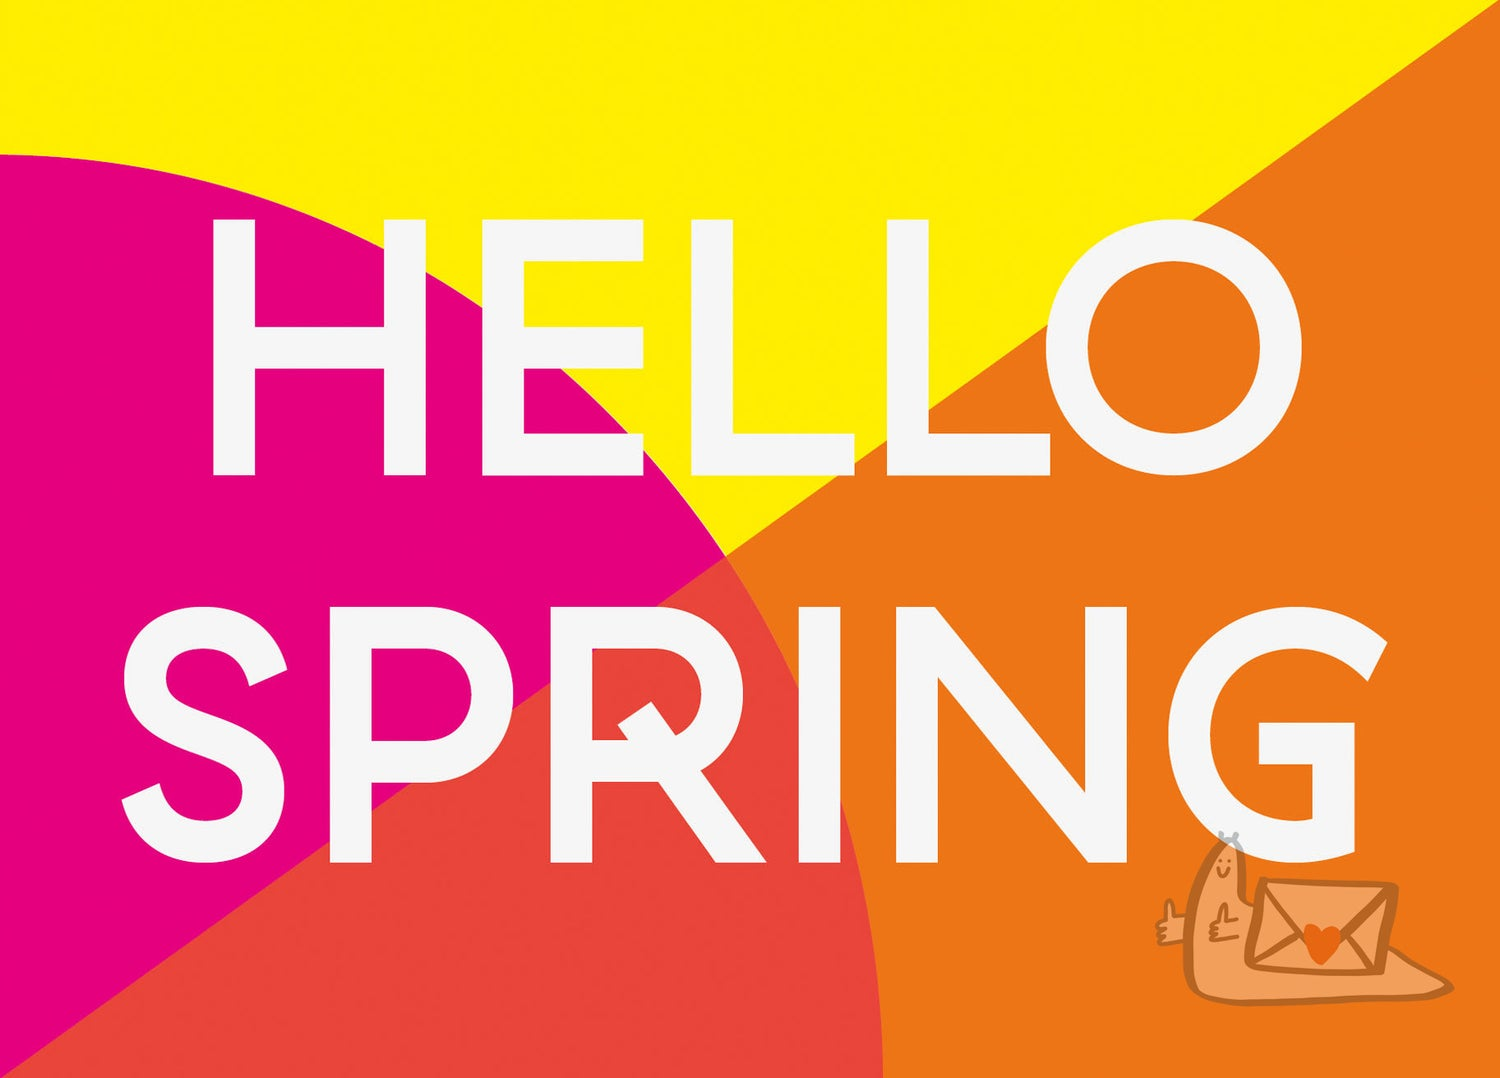 HELLO SPRING by Abby Sumner